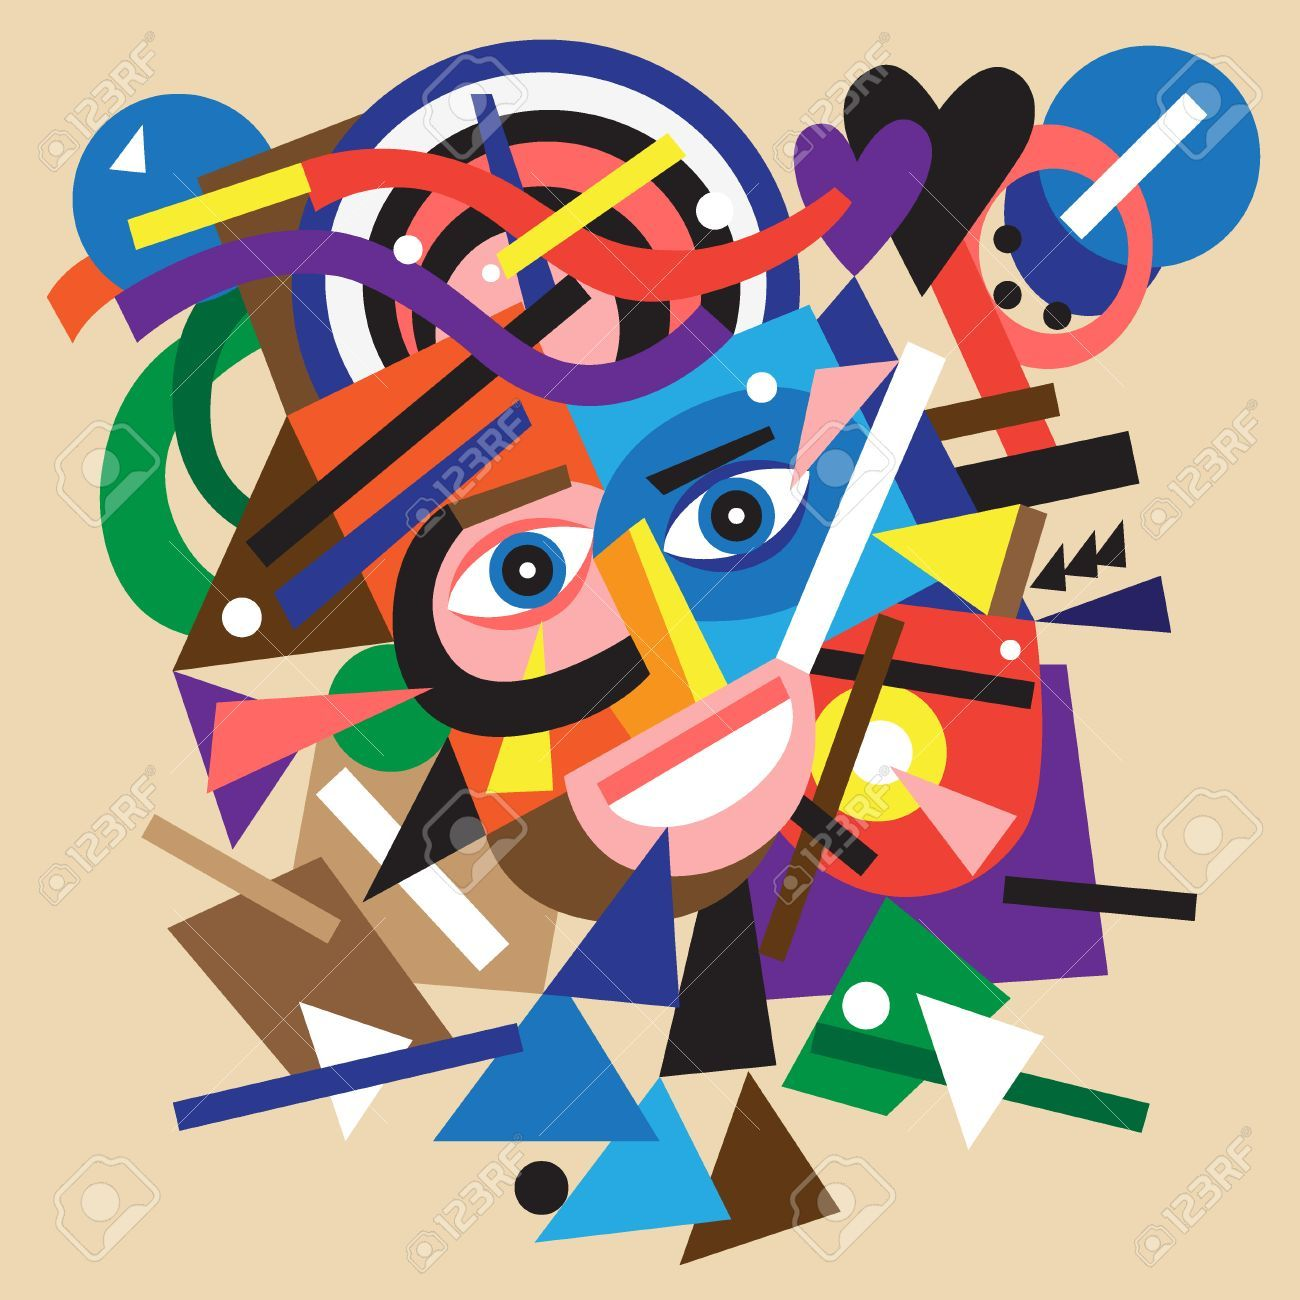 32286791-abstract-face-colourful-vector-cartoon-with-geometric-shapes-design-element-Stock-Vector.jpg (1300×1300)